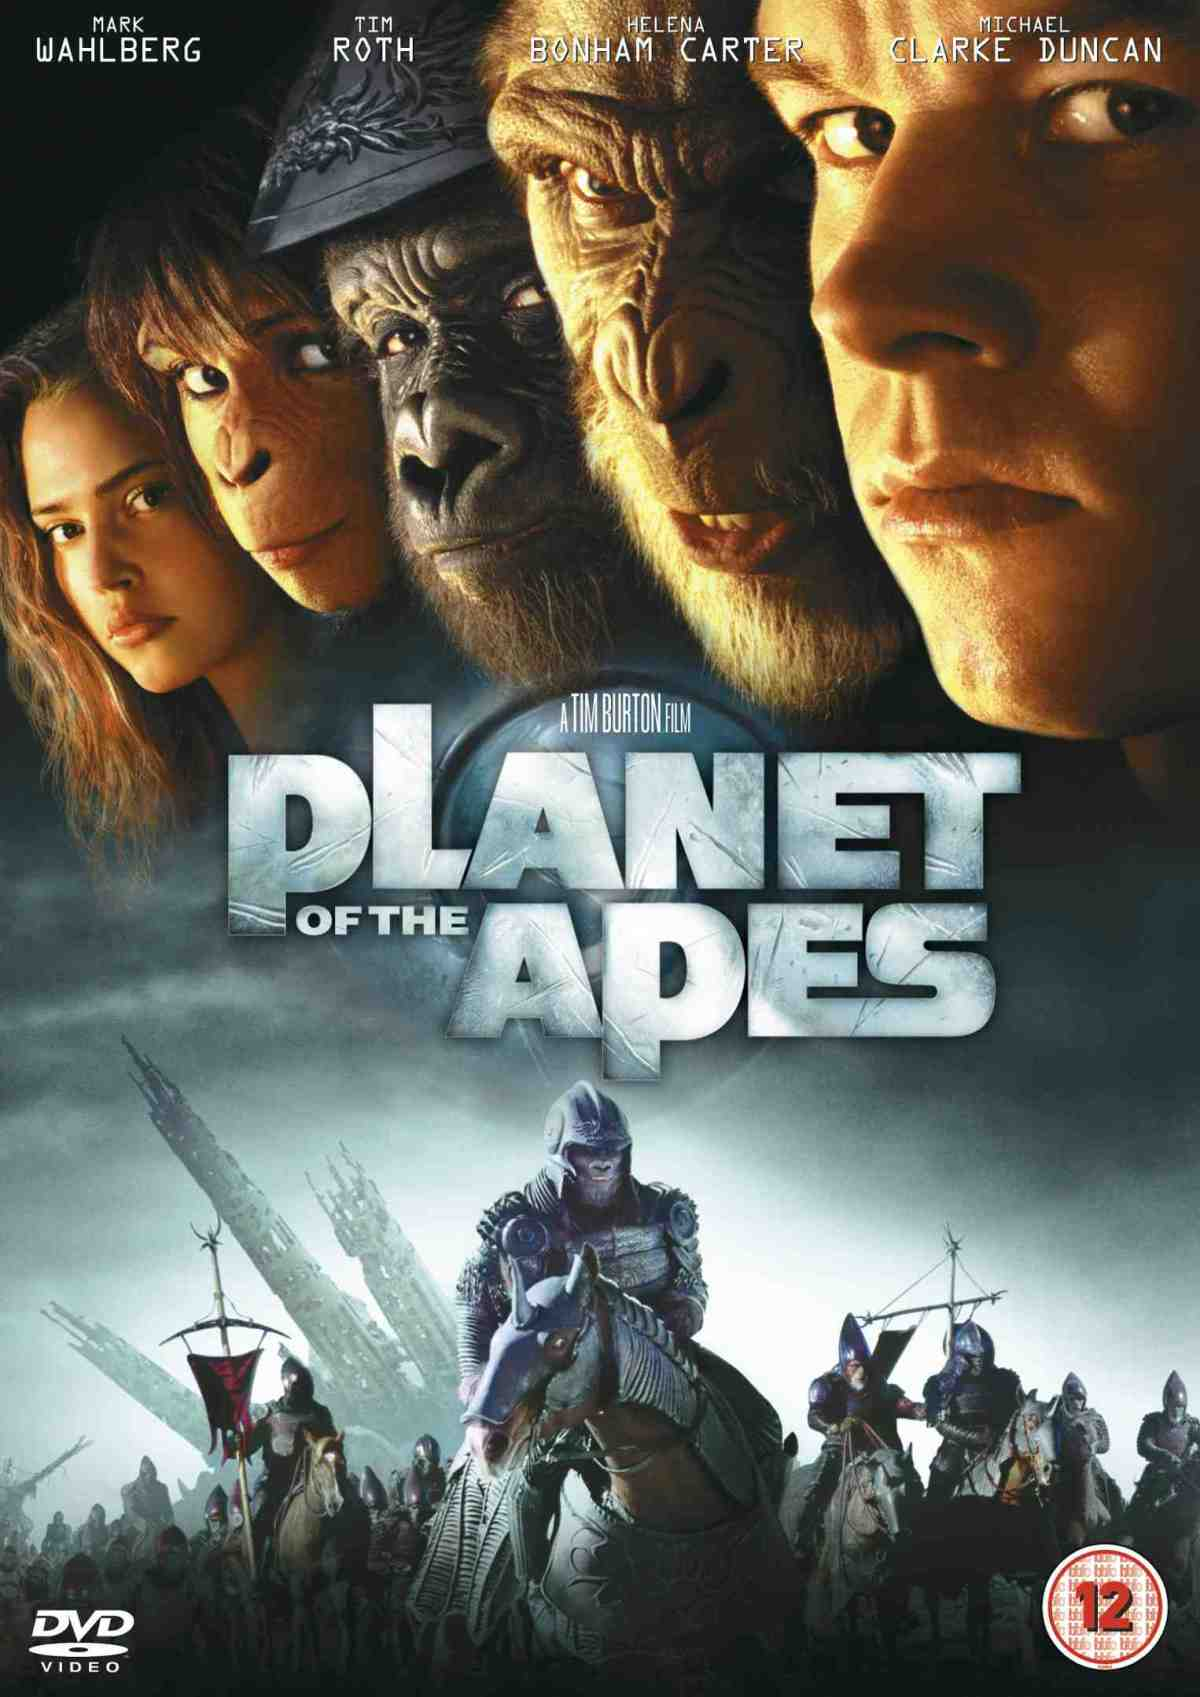 The rufus project redeeming features cast planet of the apes 2001 the rufus project redeeming features cast planet of the apes 2001 publicscrutiny Gallery